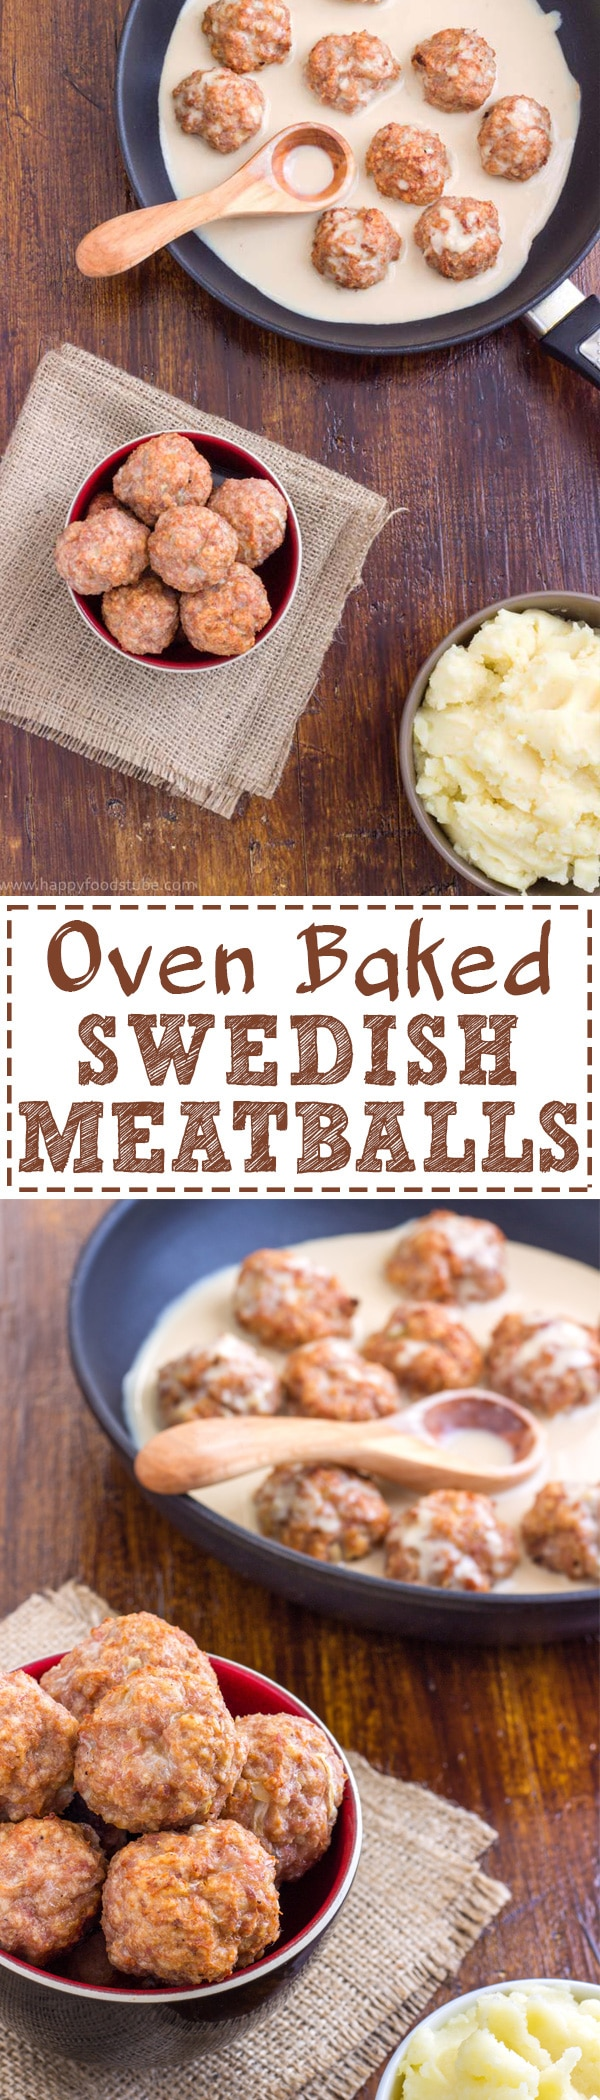 Homemade Oven Baked Swedish Meatballs Recipe! This hearty dish, served with creamy sauce and mashed potatoes is a classic comfort food. | happyfoodstube.com